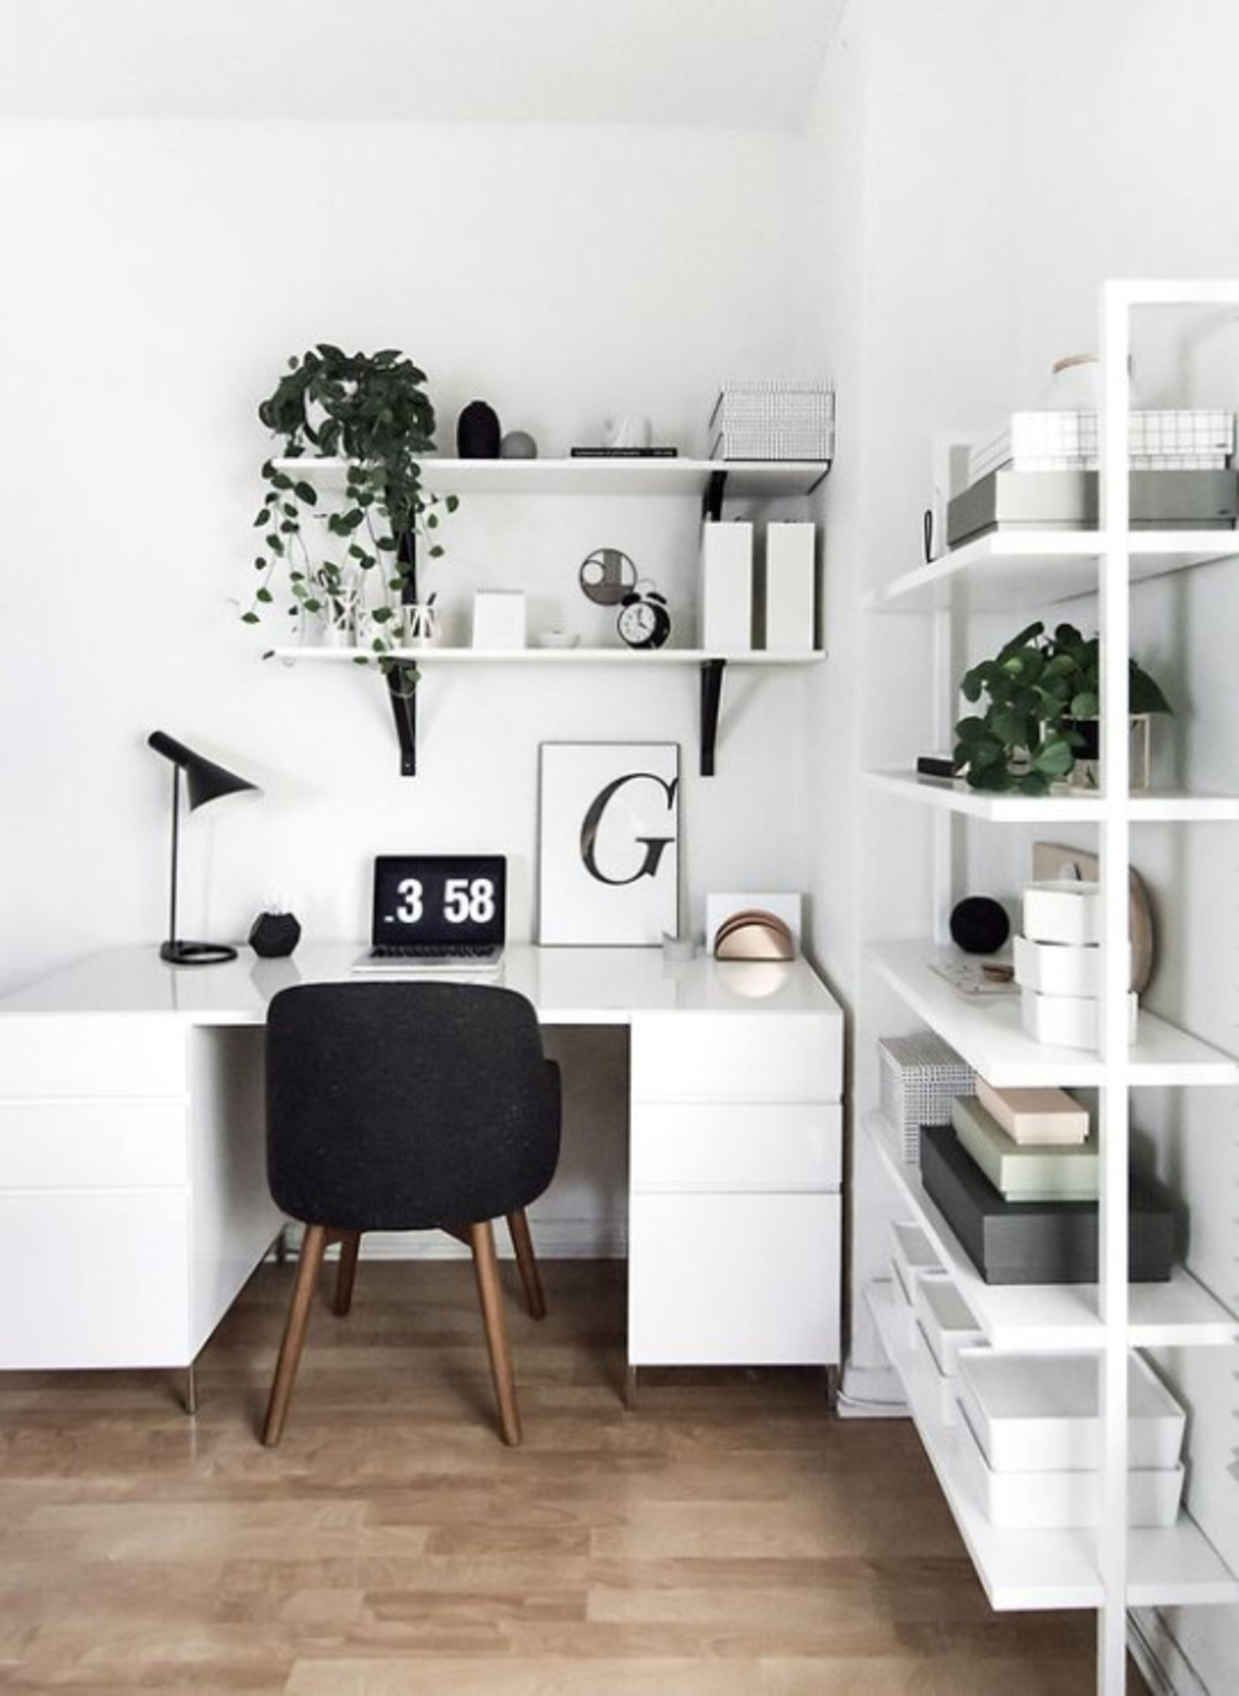 Home Office Design Inspiration Gorgeous Minimal Interior Design Inspiration 62 Ultralinx Pinterest Minimal Interior Design Inspiration 62 Room Pinterest